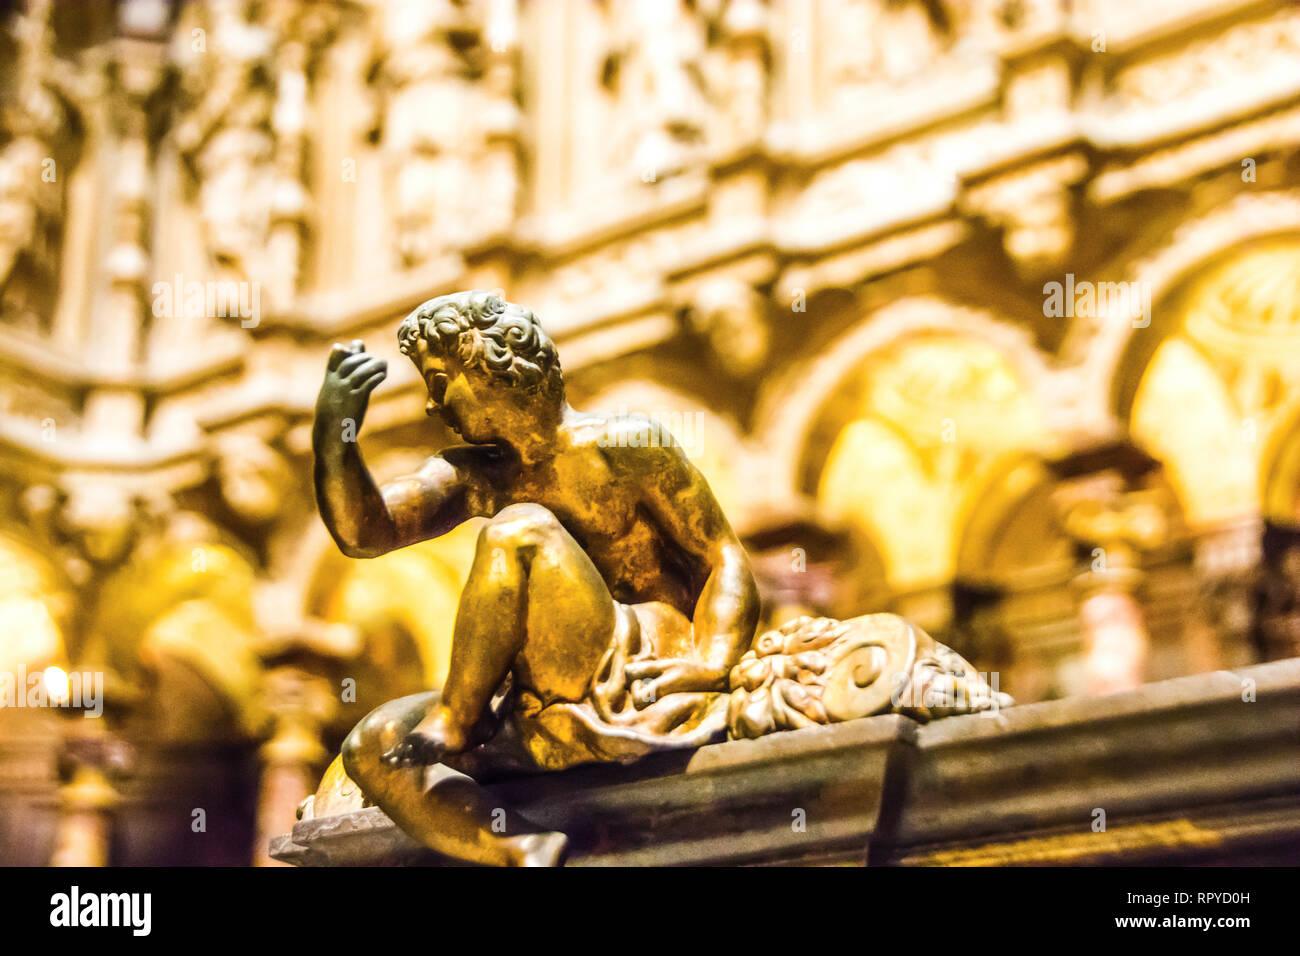 Religious art work guilded in gold; Granada Cathedral, Granada, Spain. - Stock Image